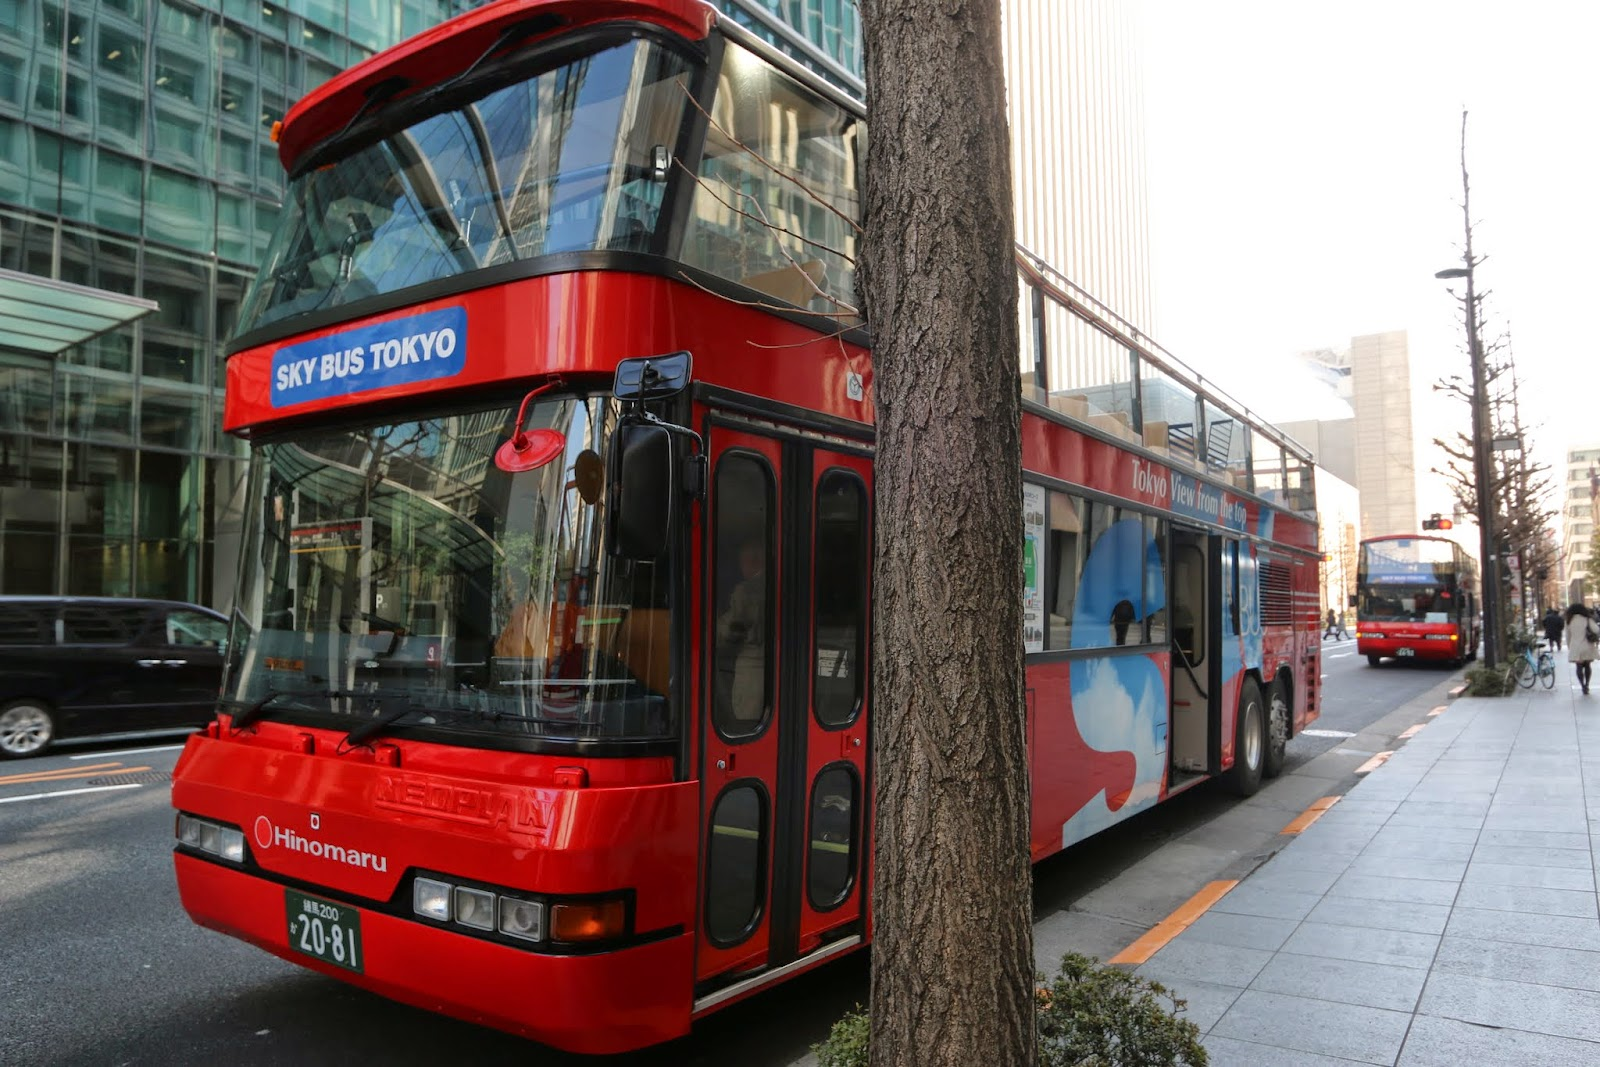 Feeling exhausted from a long walk, you can take a relaxing round tour on Sky Bus Tokyo for the city view which departs at Mitsubishi Building in Marunouchi near Tokyo Station